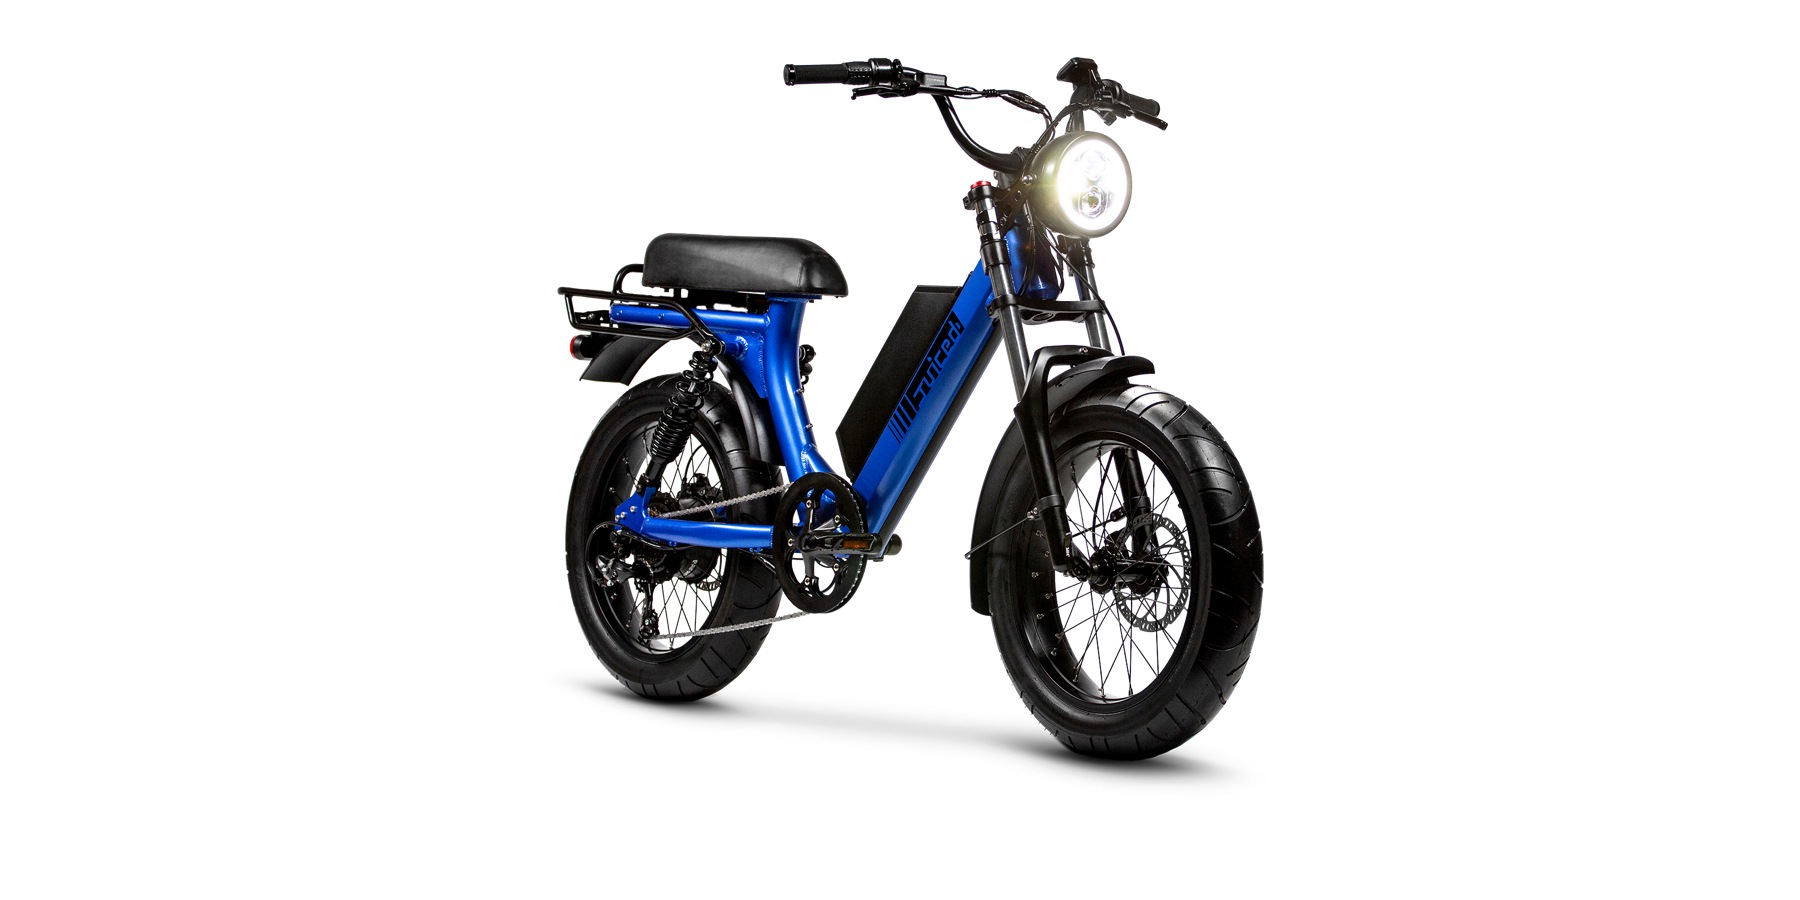 28 mph Juiced Scorpion moped-style electric bike begins deliveries - Electrek